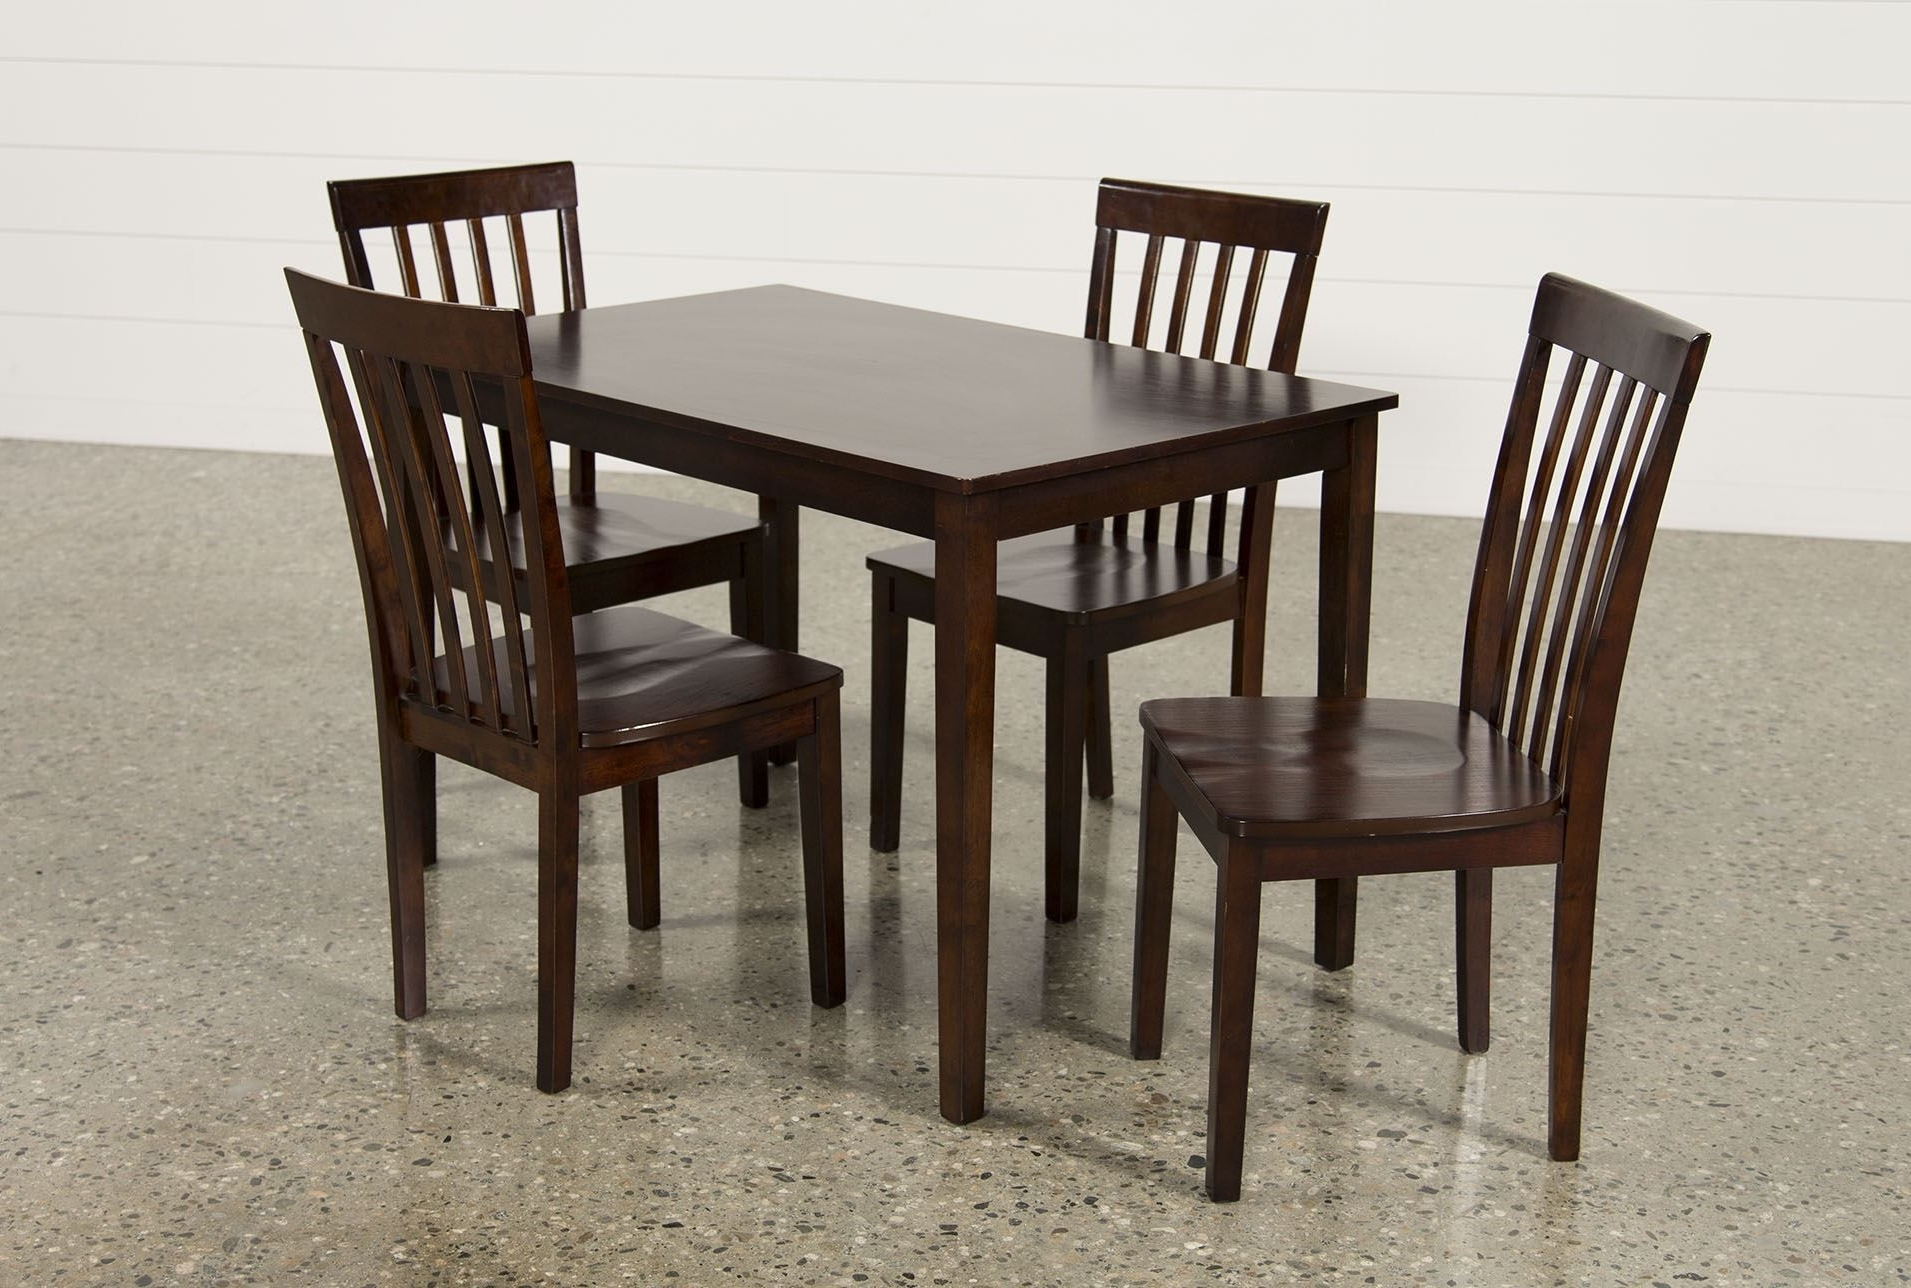 Jaxon 7 Piece Rectangle Dining Sets With Upholstered Chairs Inside Current Dining Set Living Spaces. Living Spaces Dining Table Set Brilliant (Gallery 21 of 25)